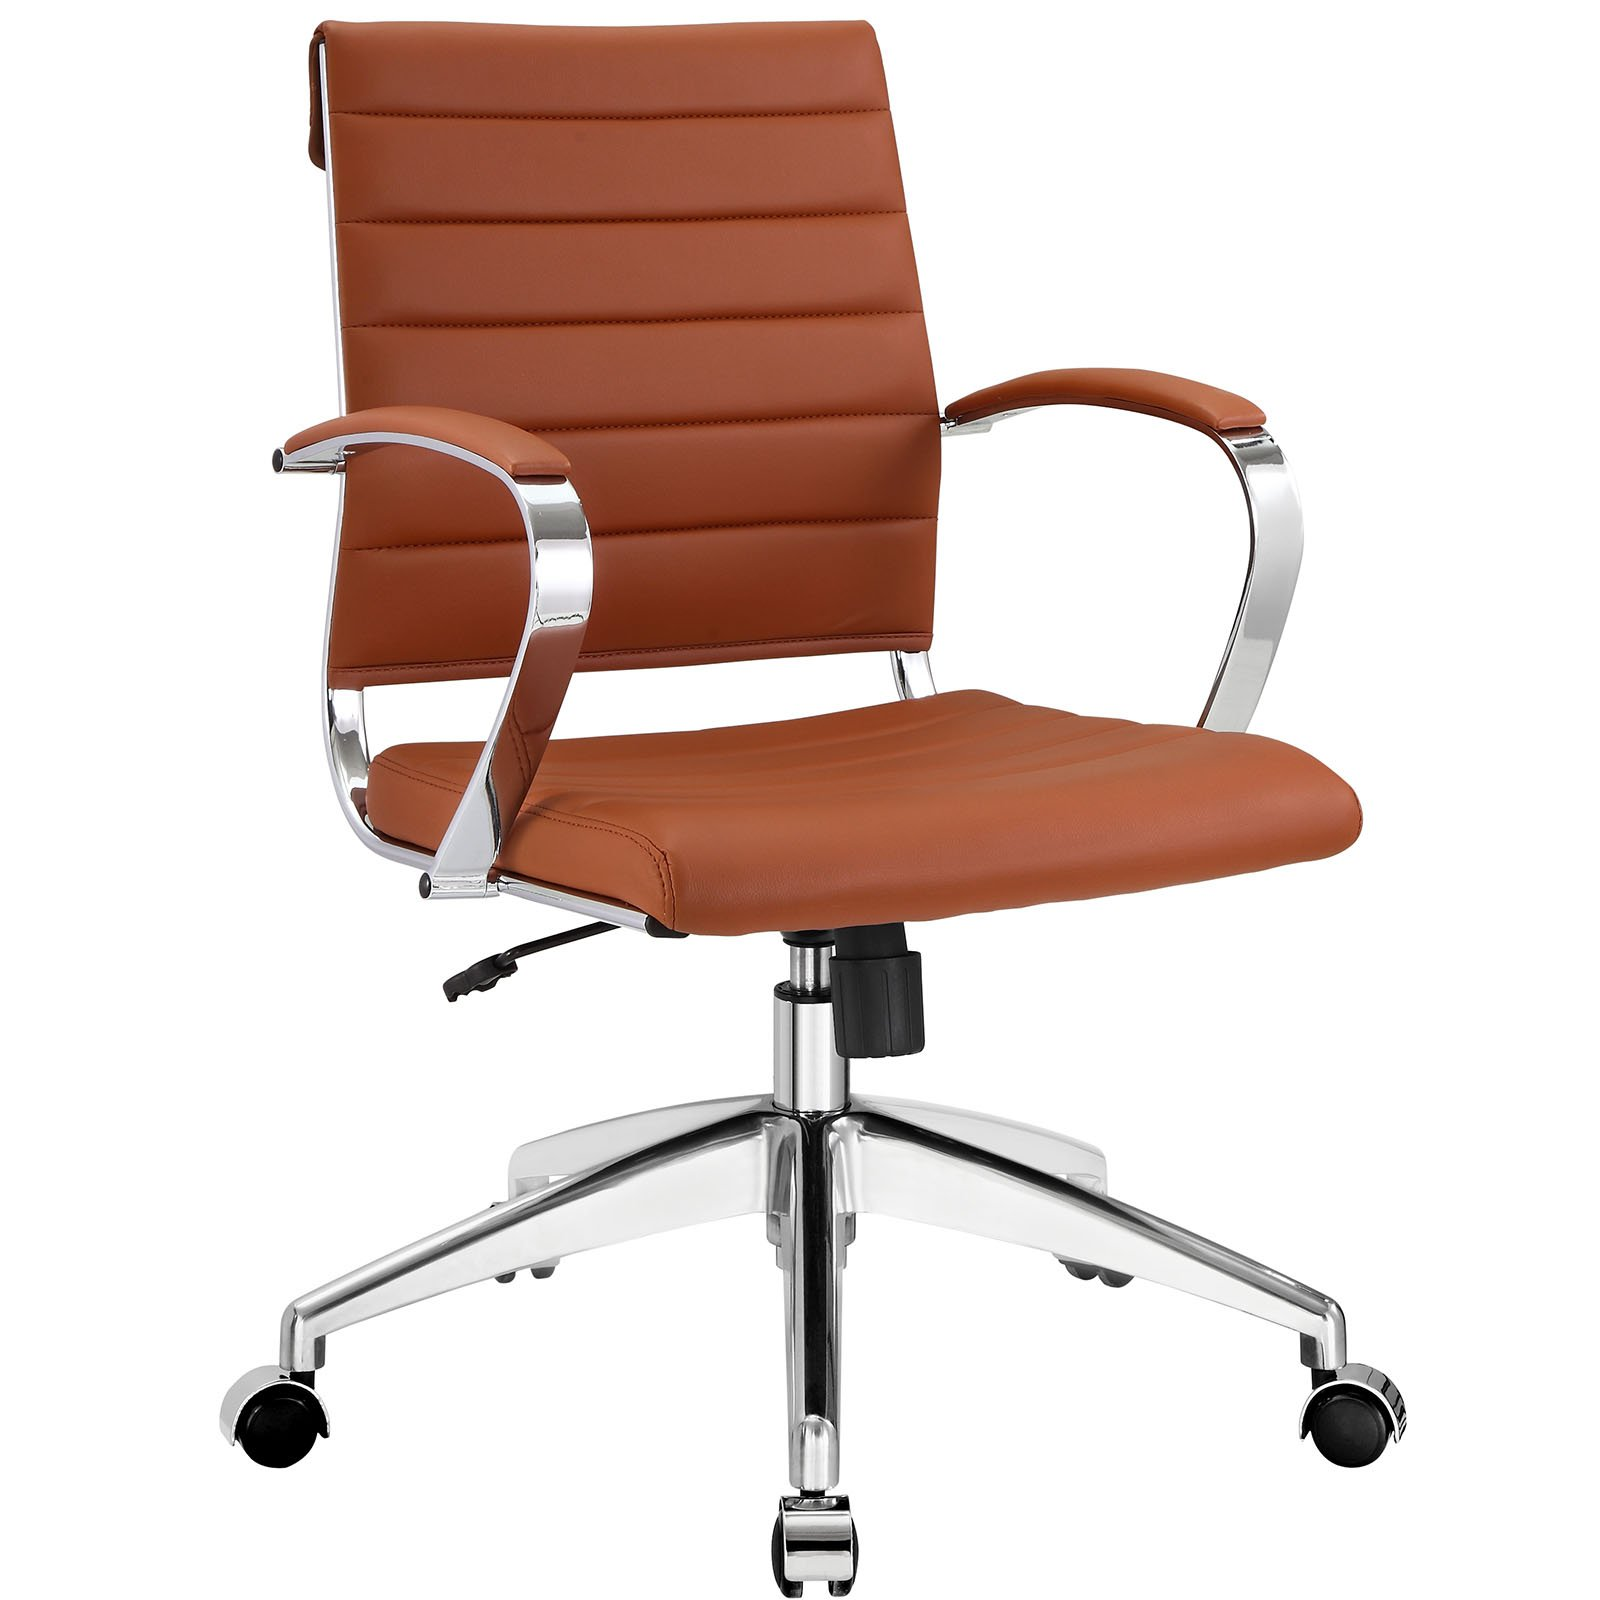 Modway Jive Ribbed Mid Back Executive Office Chair With Arms In Terracotta by Modway